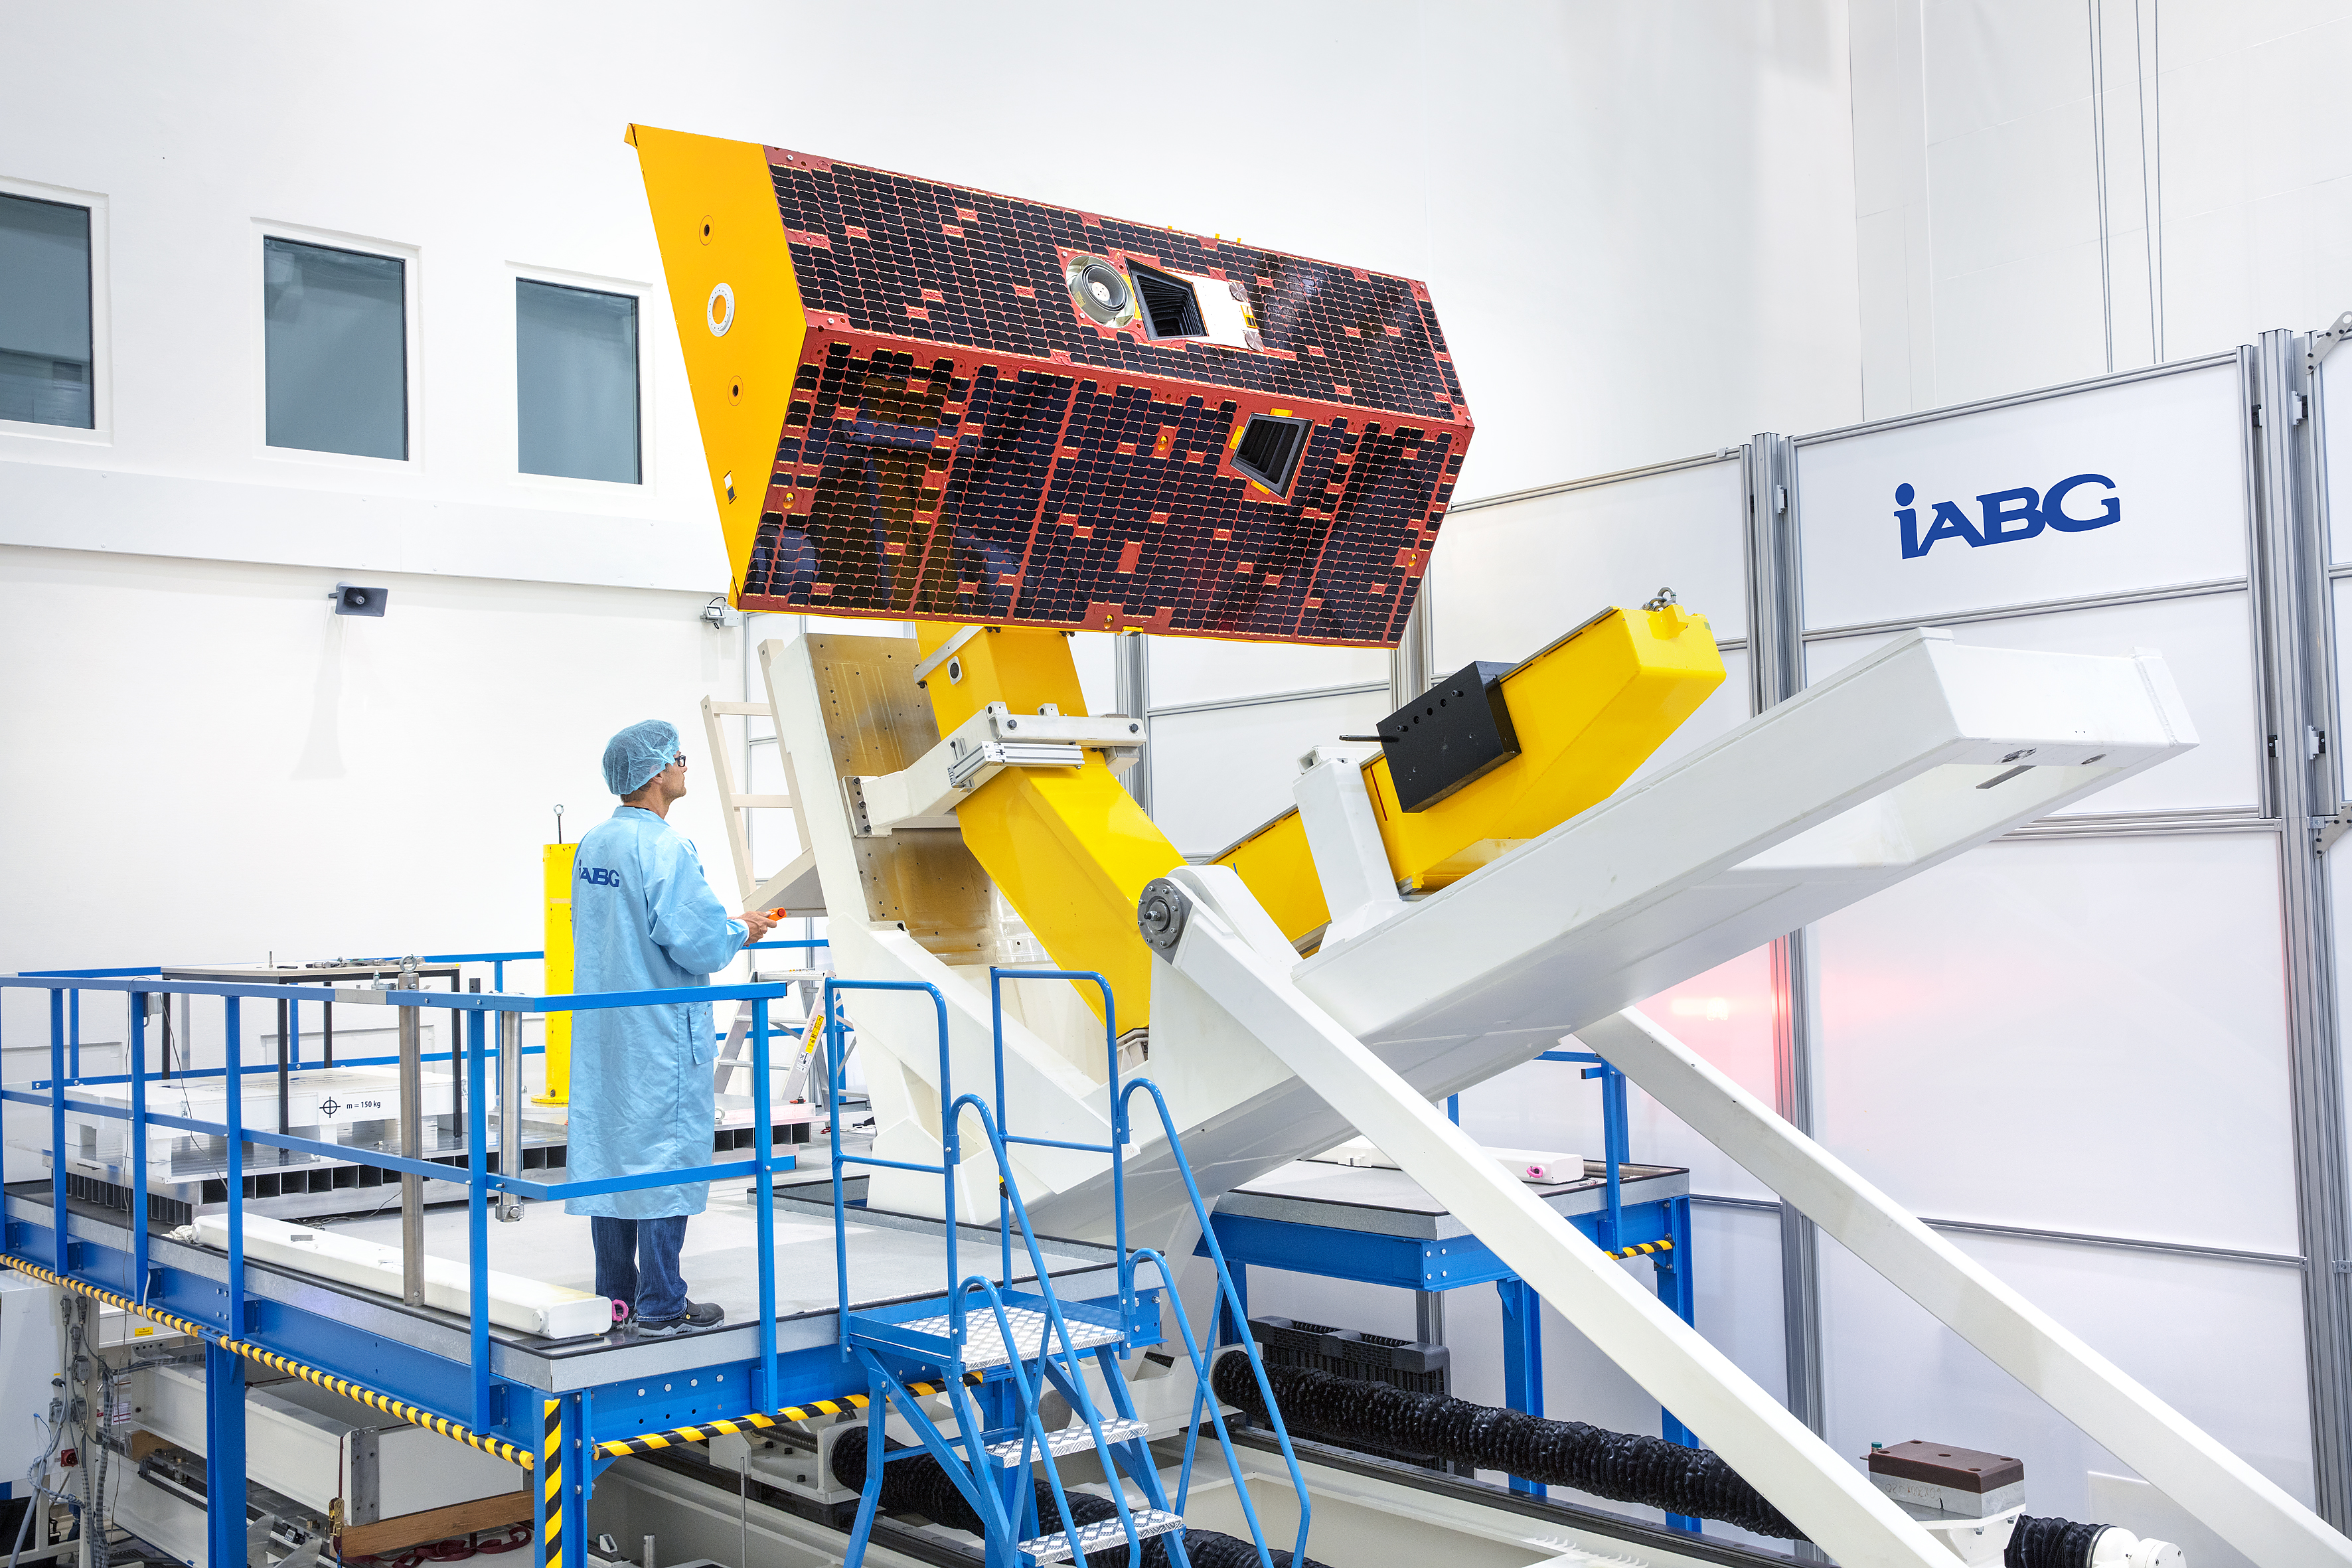 The GRACE-FO satellites were assembled by Airbus Defence and Space in Germany. The photo shows one of the satellites in the testing facility of IABG, an Airbus subcontractor, in Munich (view 3).